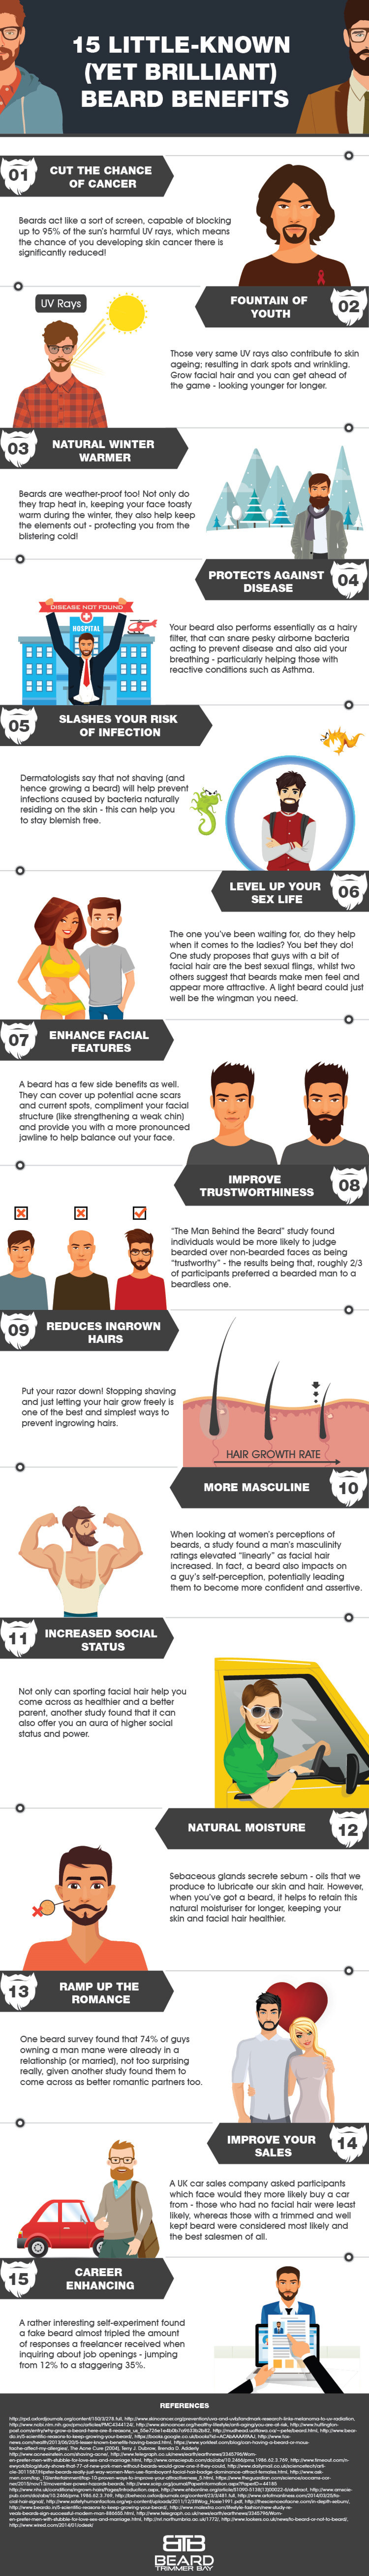 Brilliant Benefits of Having a Beard Infographic